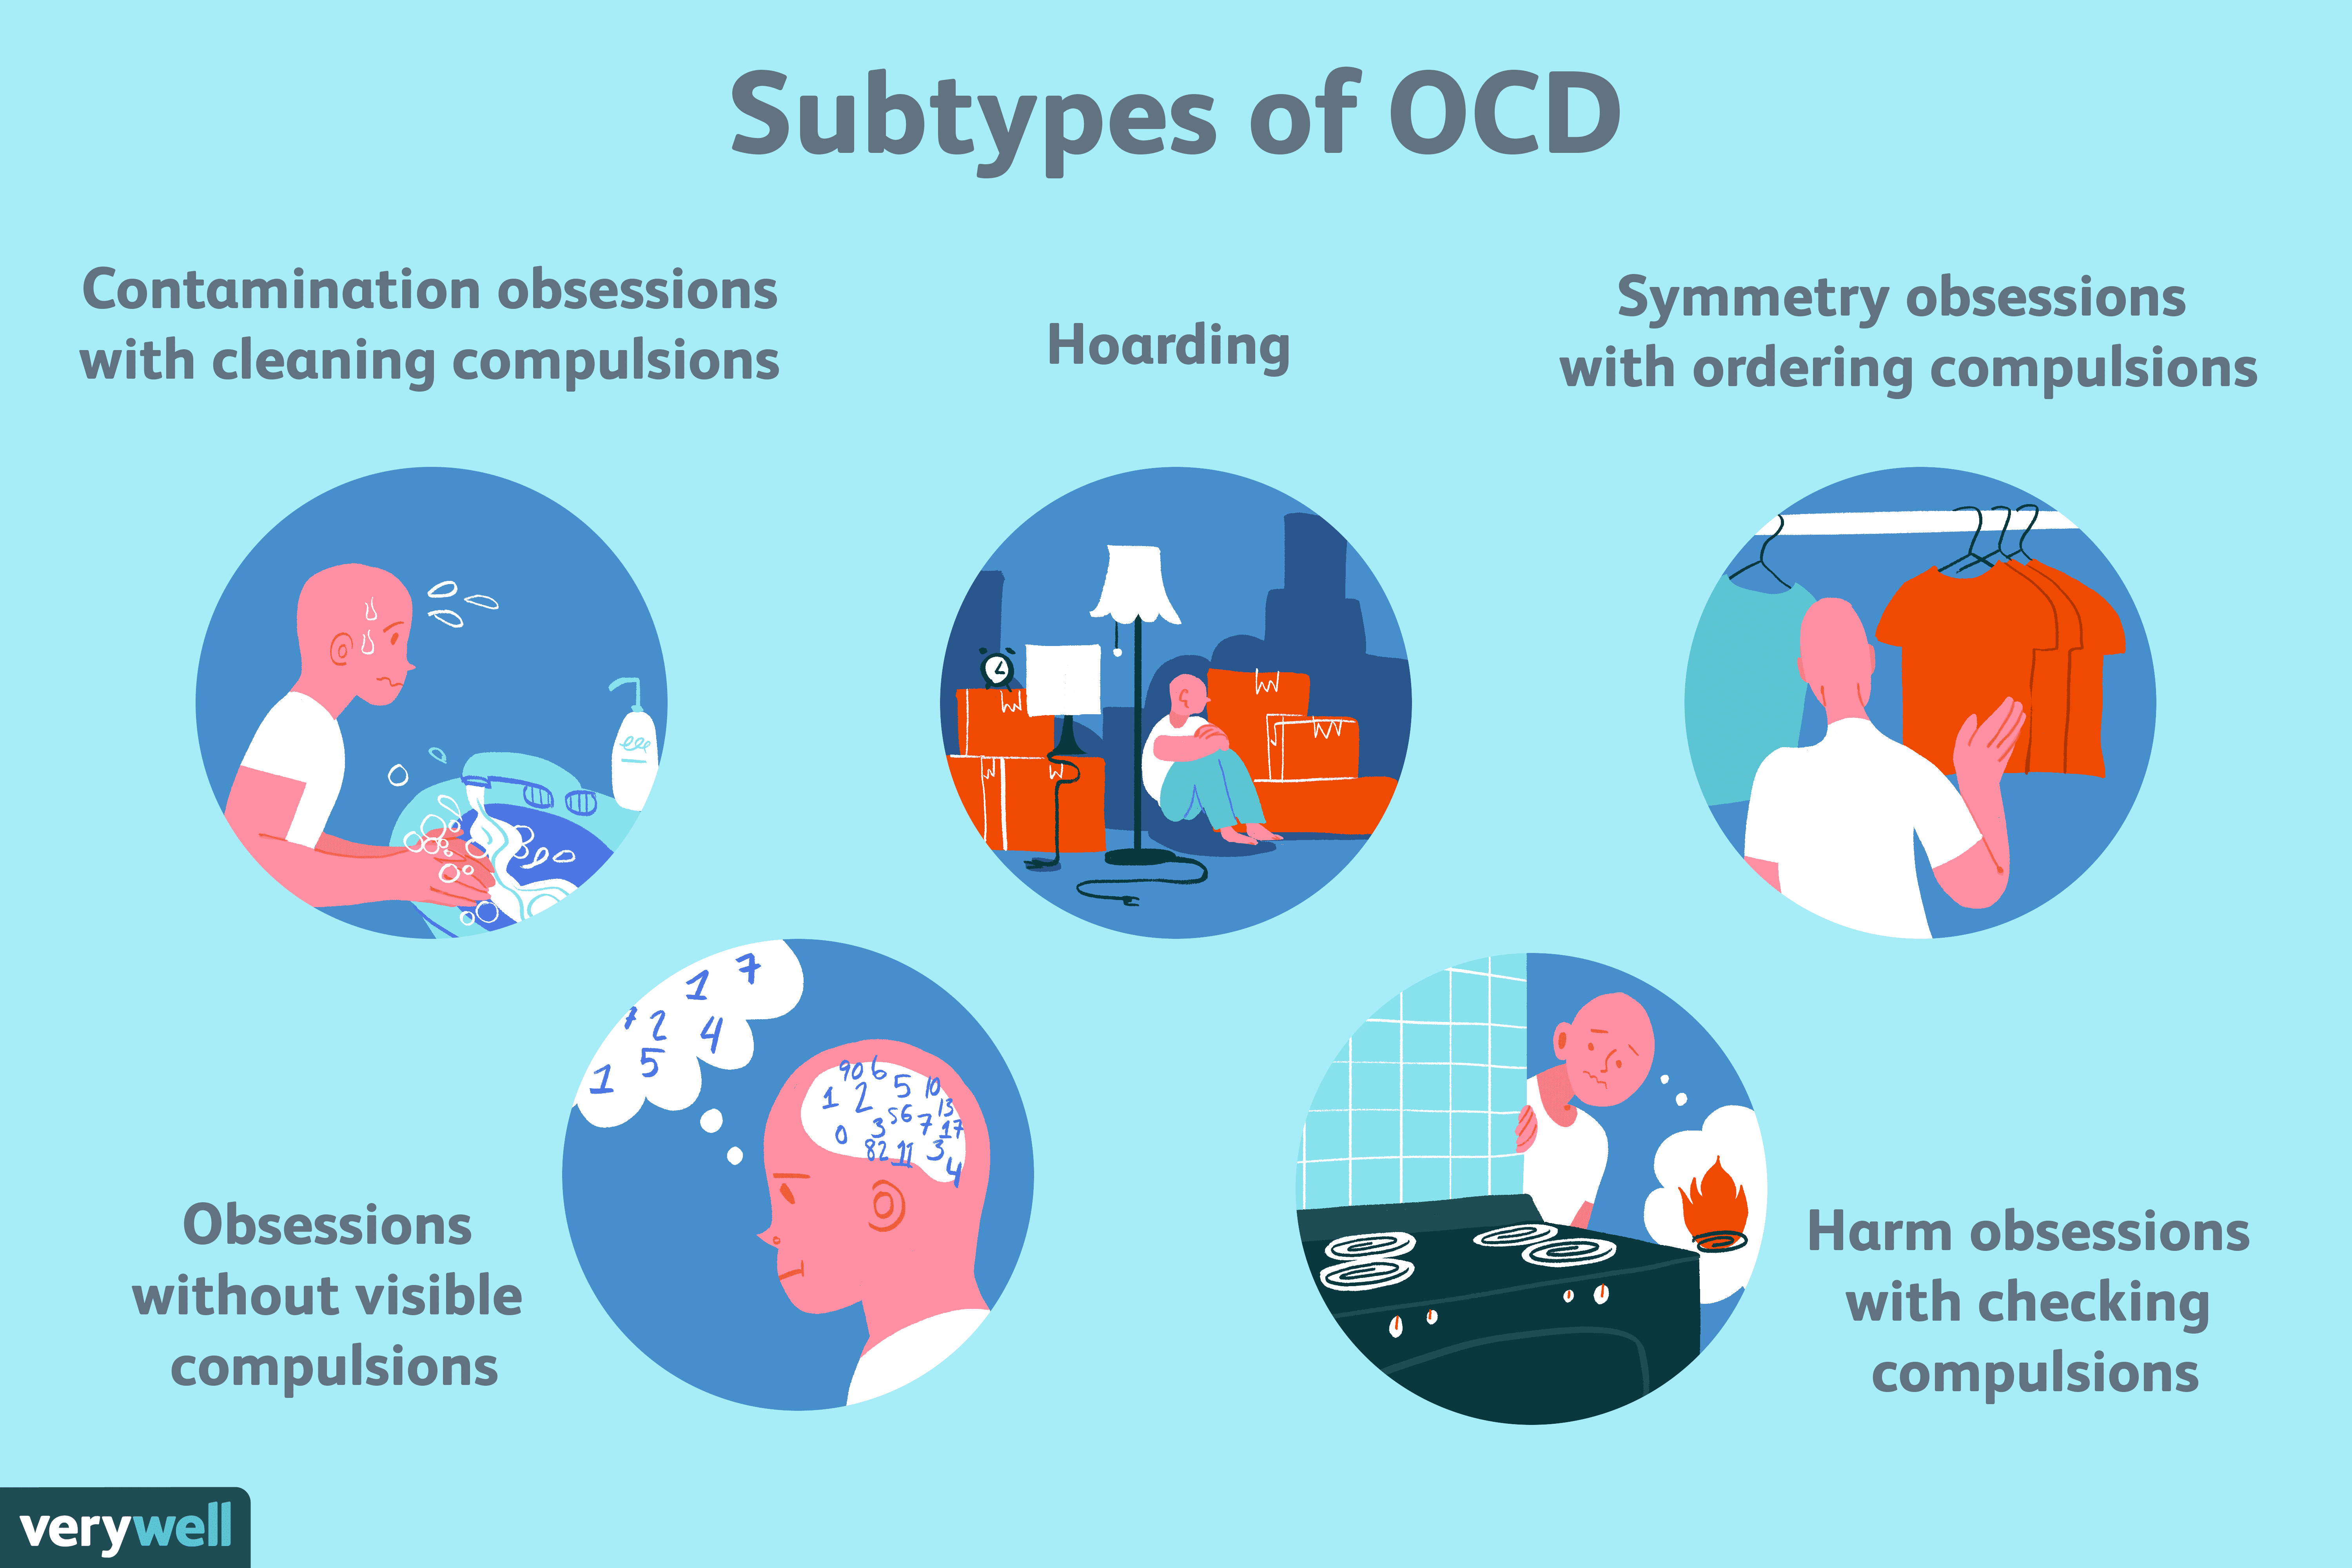 e27399f4e Symptoms of the Subtypes of OCD and Related Disorders